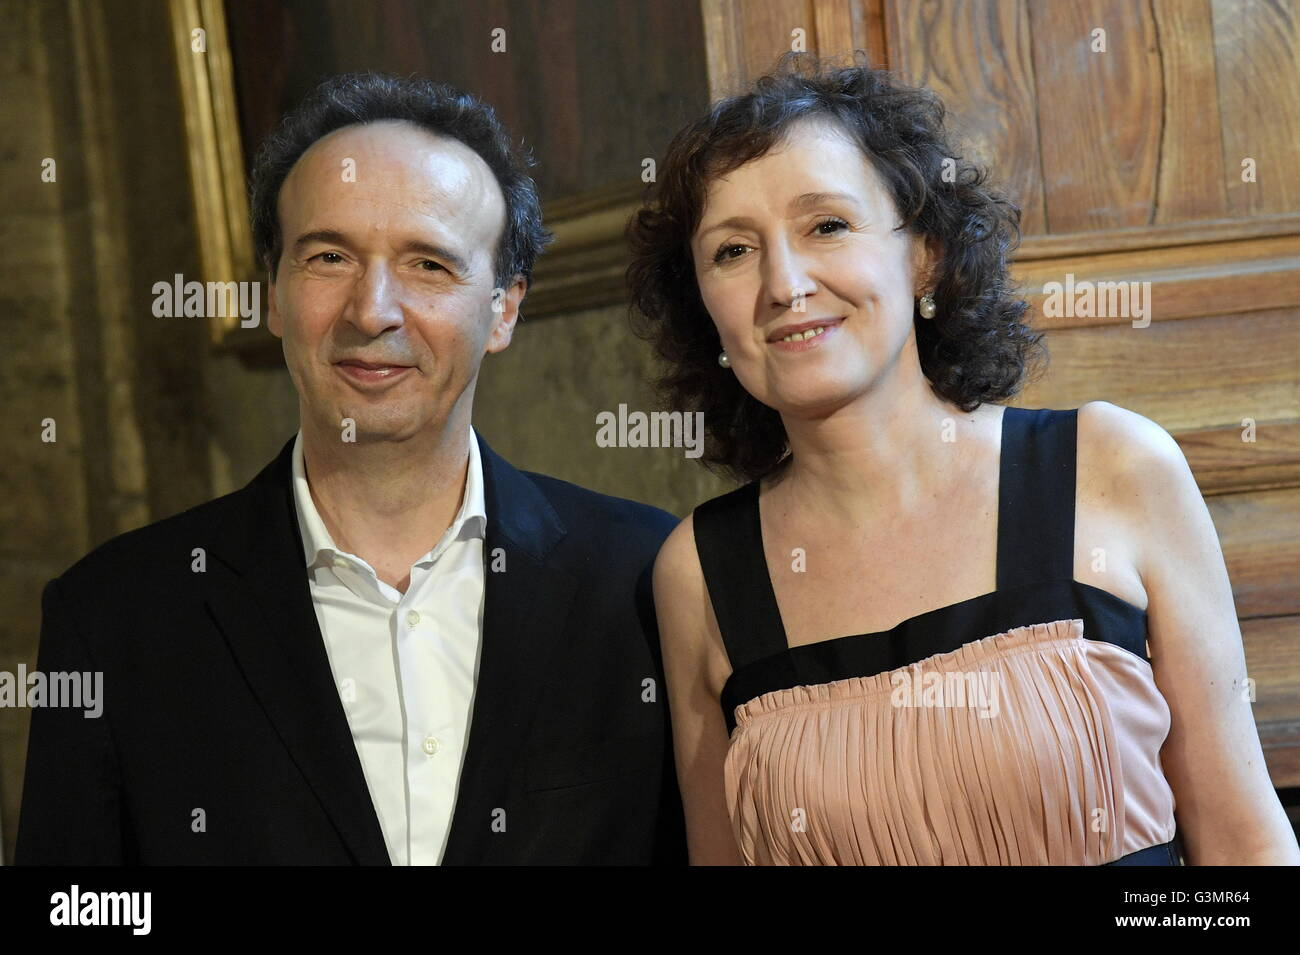 Actor and director Roberto Benigni and wife Nicoletta Braschi during Stock  Photo - Alamy